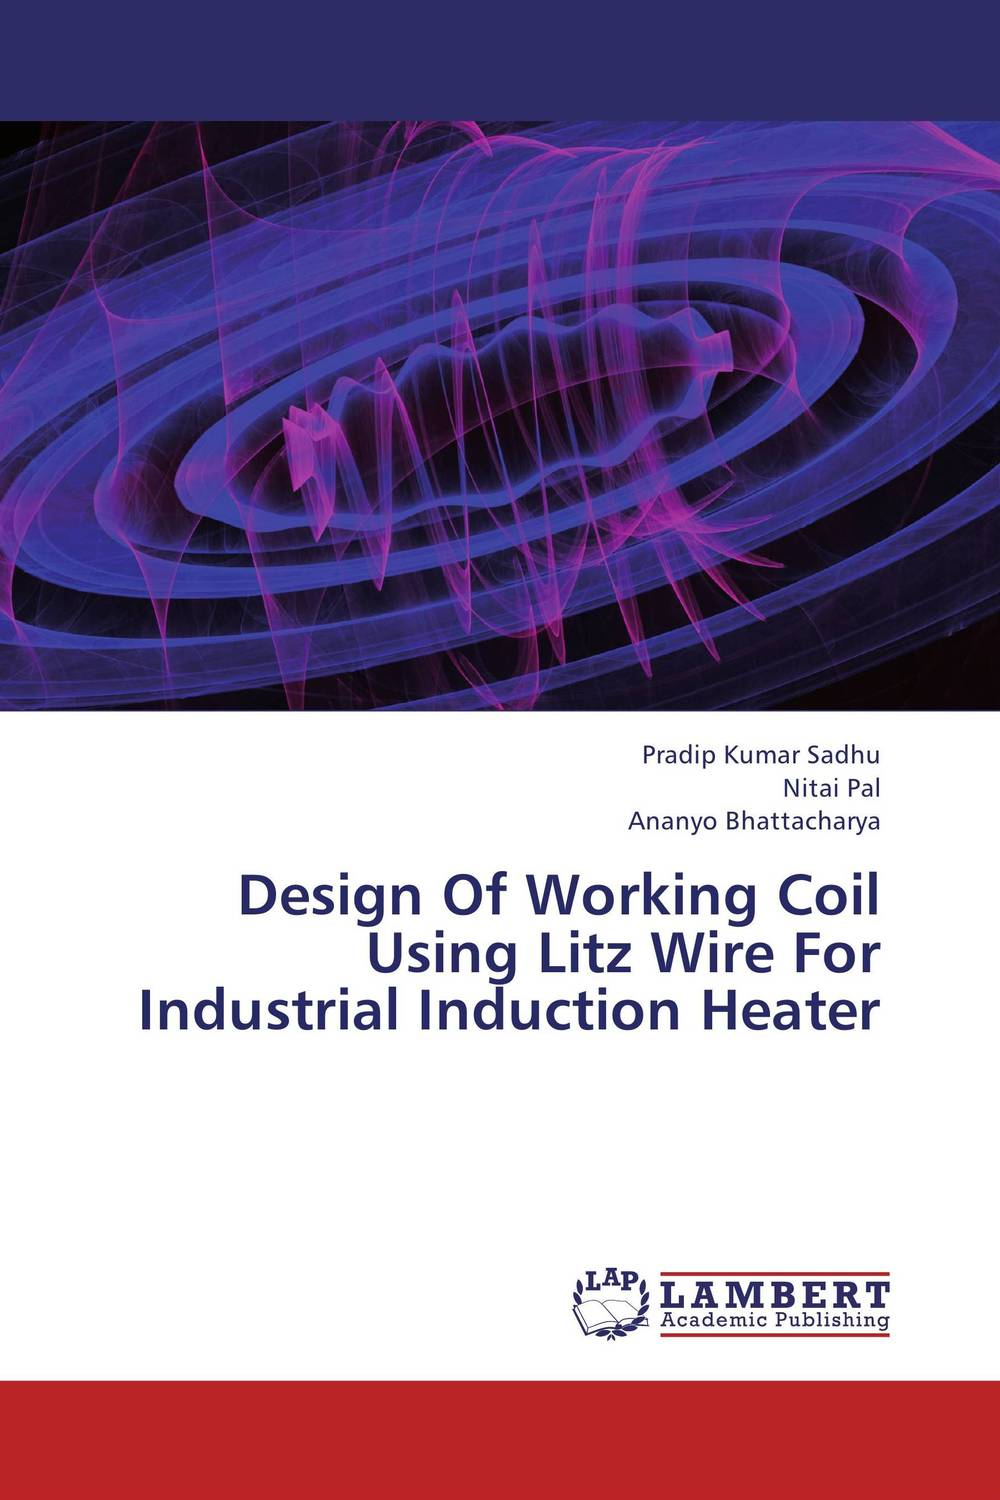 Design Of Working Coil Using Litz Wire For Industrial Induction Heater 1 8kw integrated type of induction heating machine